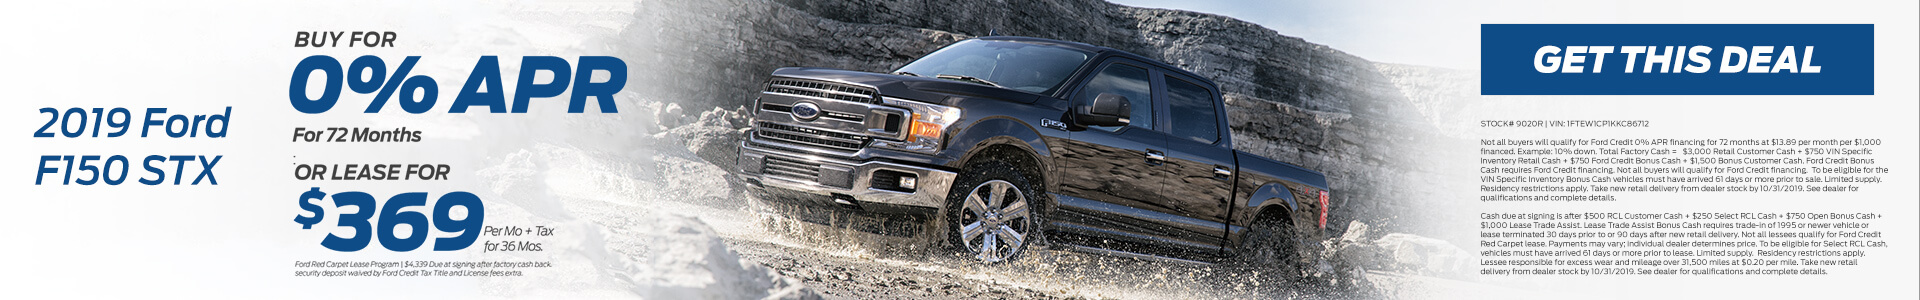 Ford F150 $369 Lease